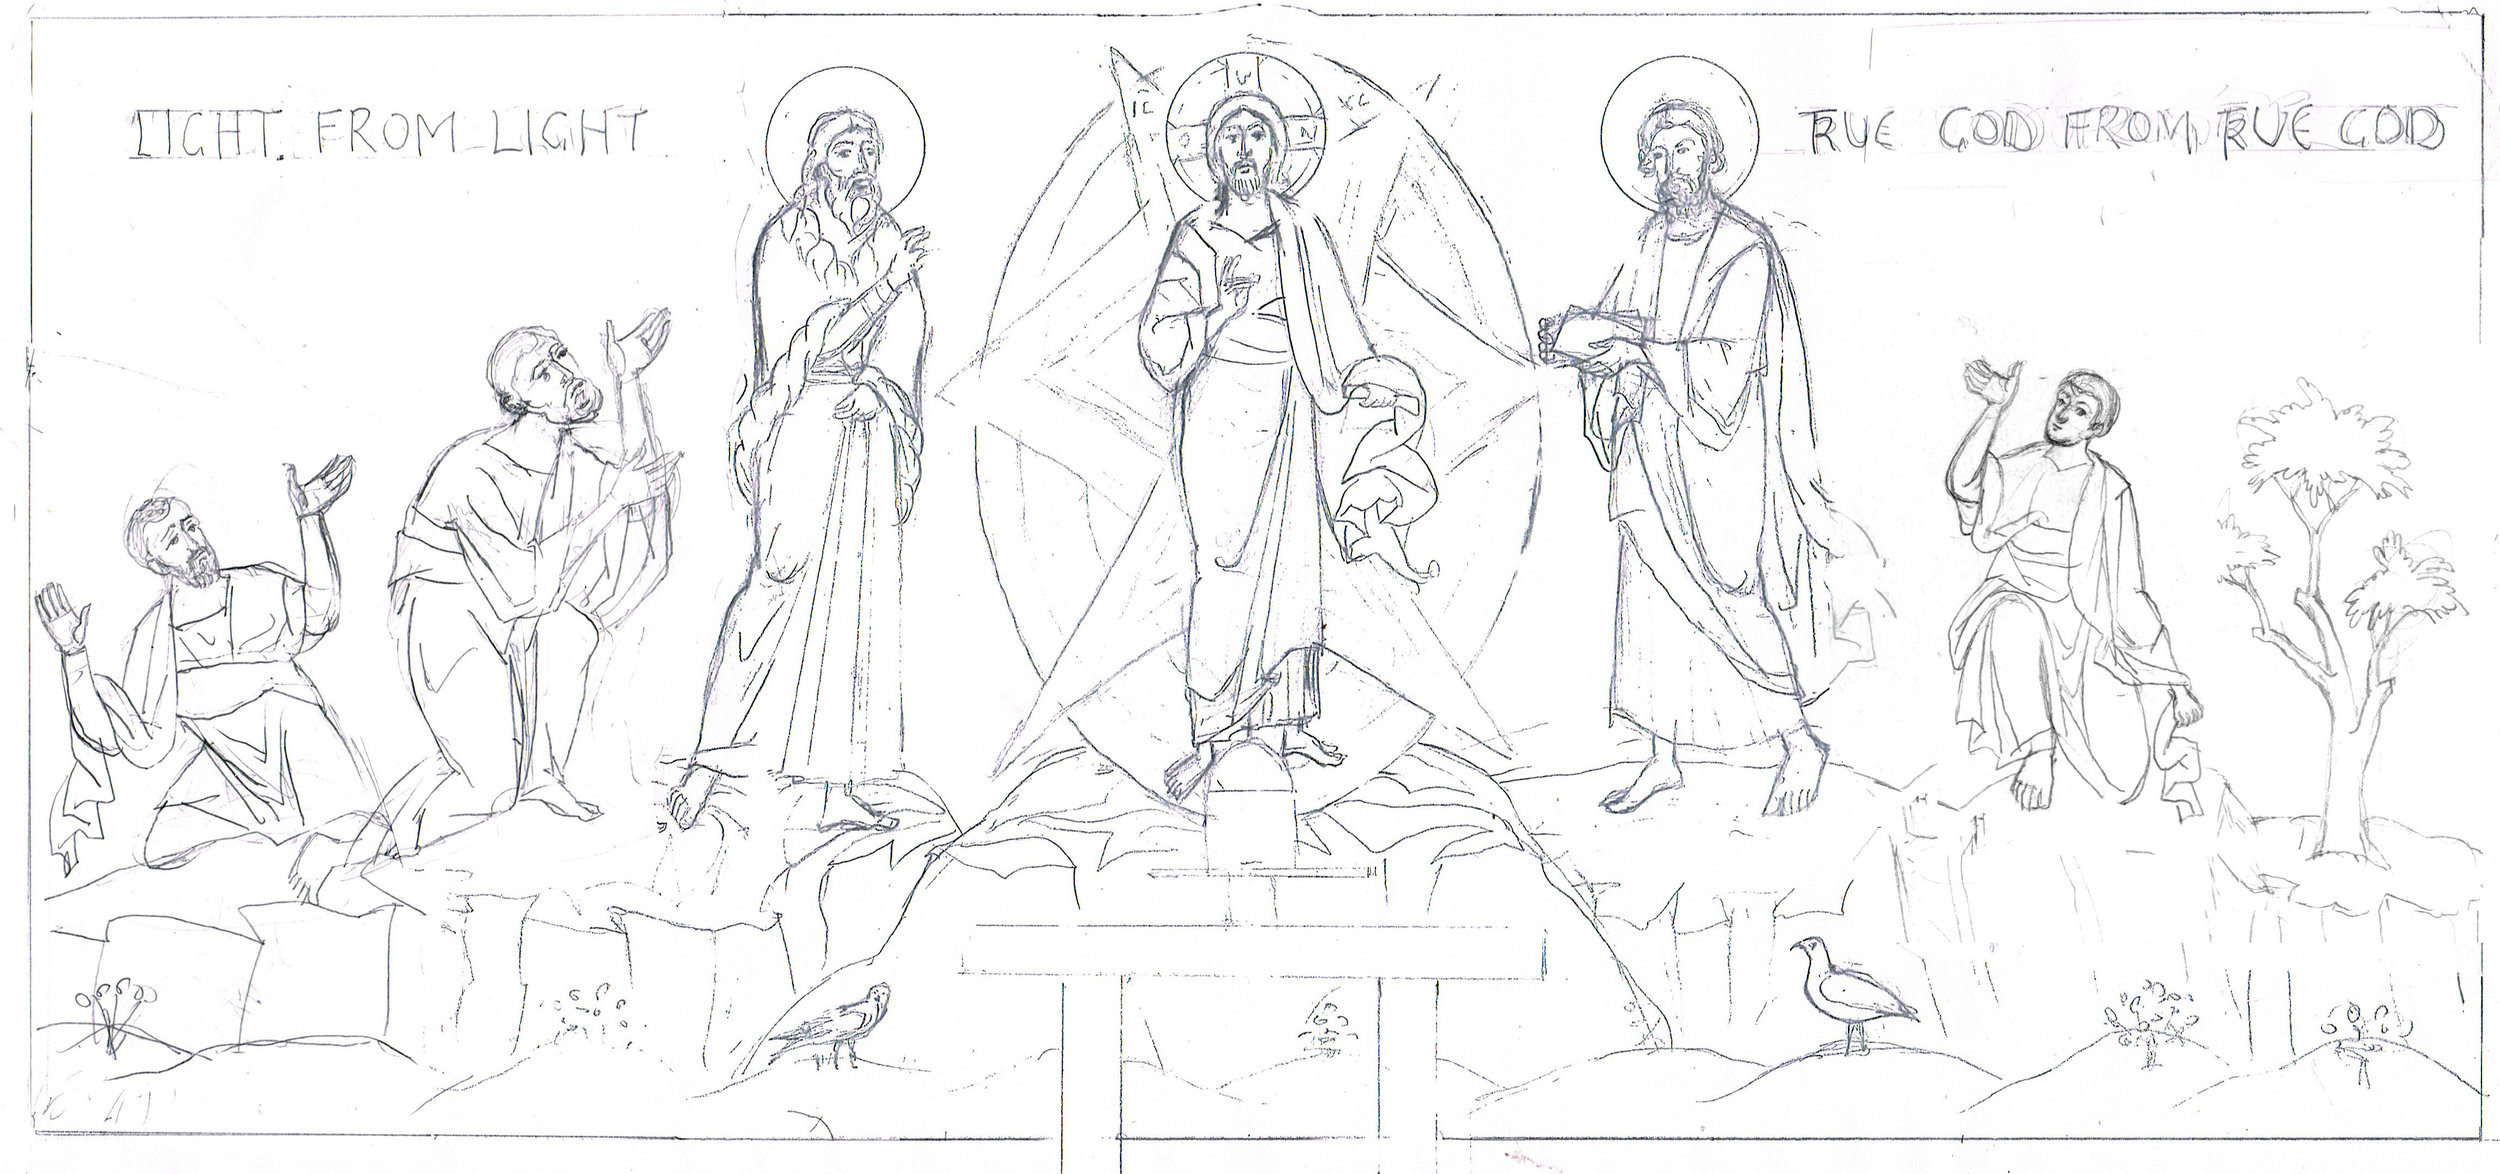 A sketch of the design that Aidan Hart will paint.